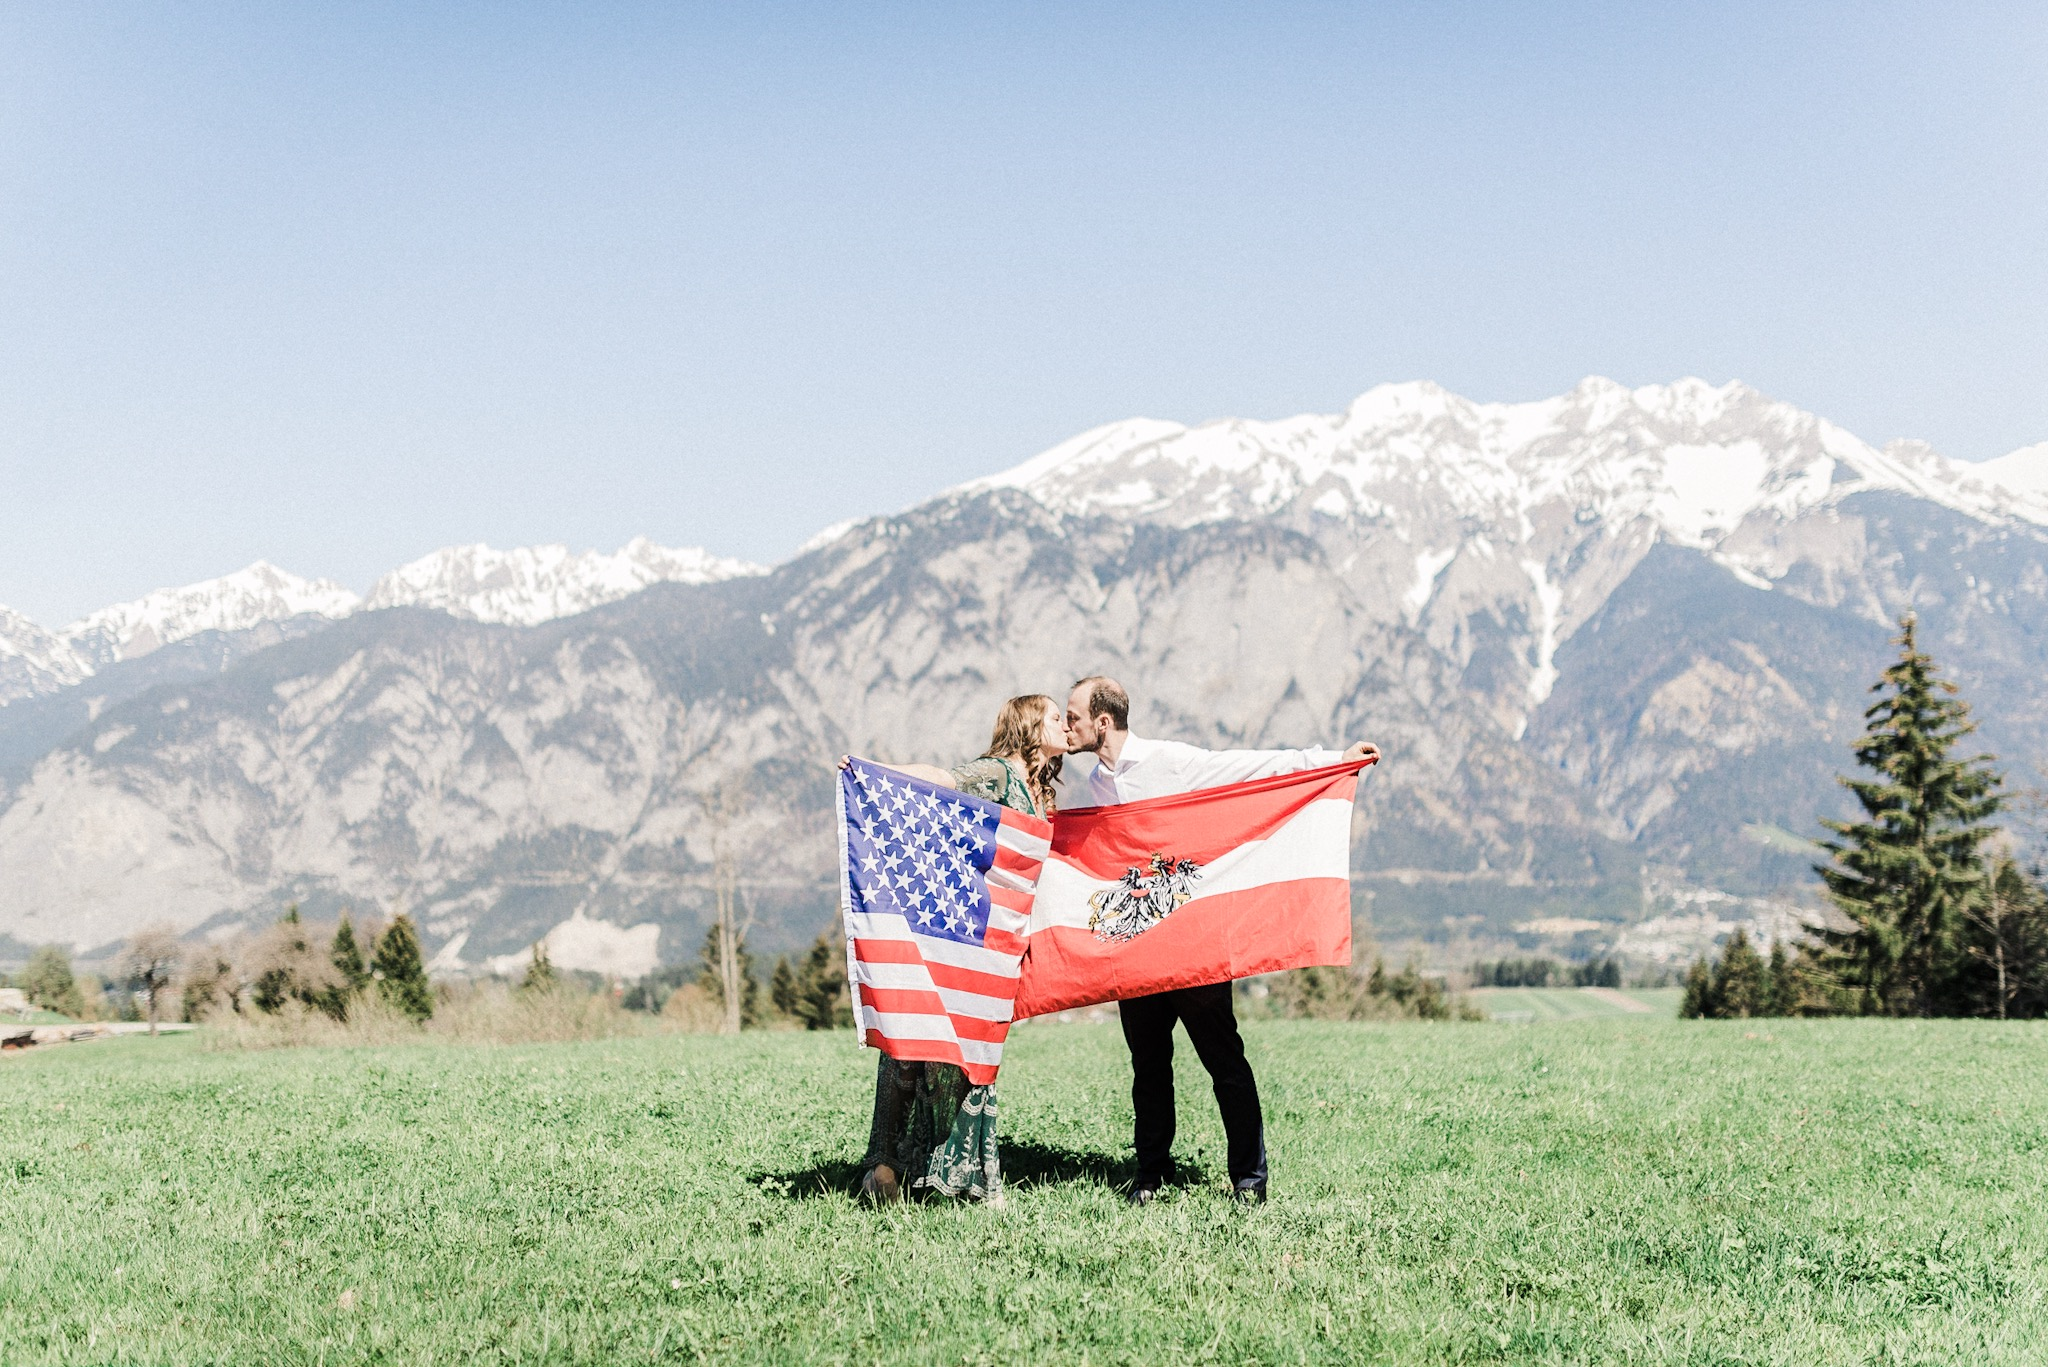 Adelia + Thomas | Part One: The Engagement | An Adventurous Destination Engagement Photography Session in the Alps | Innsbruck, Austria | Travel Wedding Photographers in Indianapolis